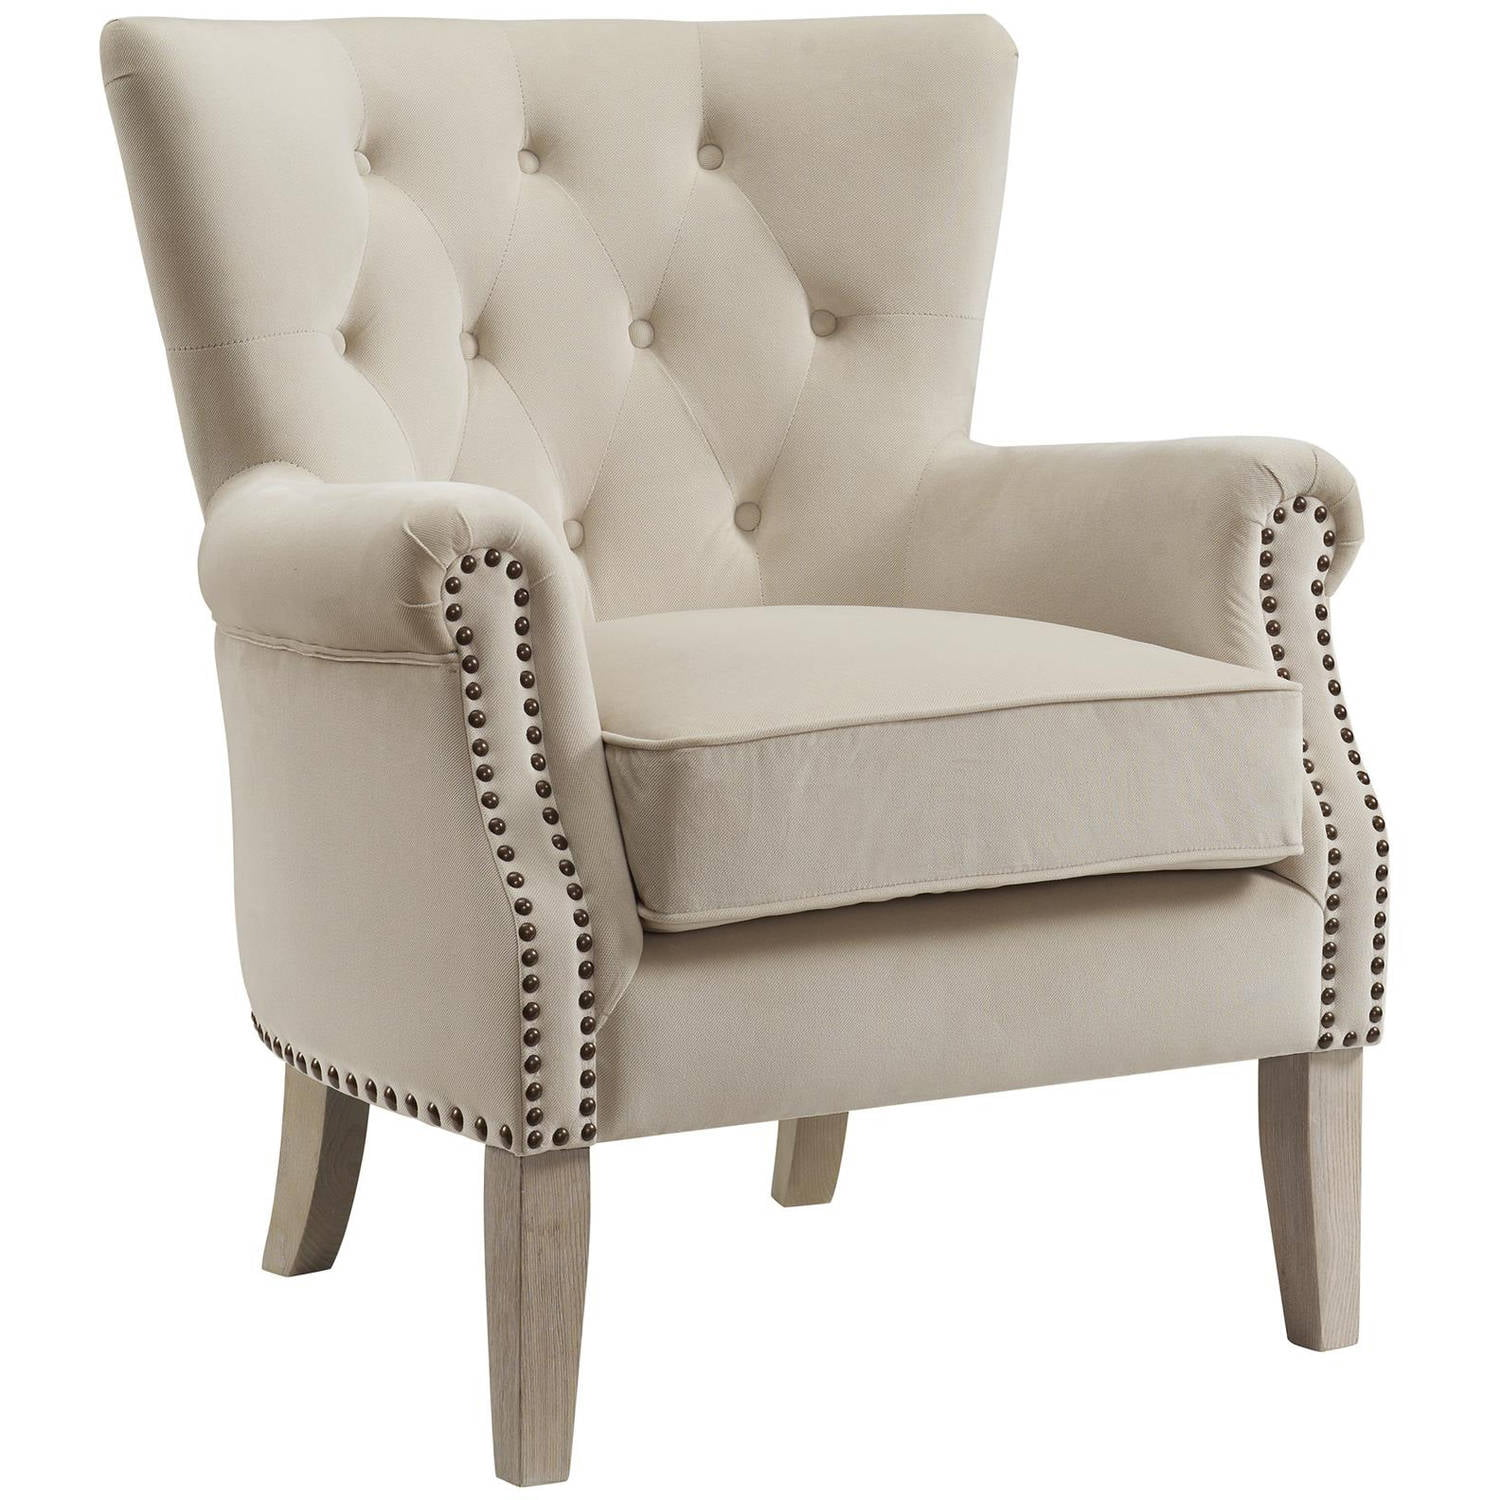 accent chairs accent chairs recliners recliners living room sets - Living Room Sets For Cheap